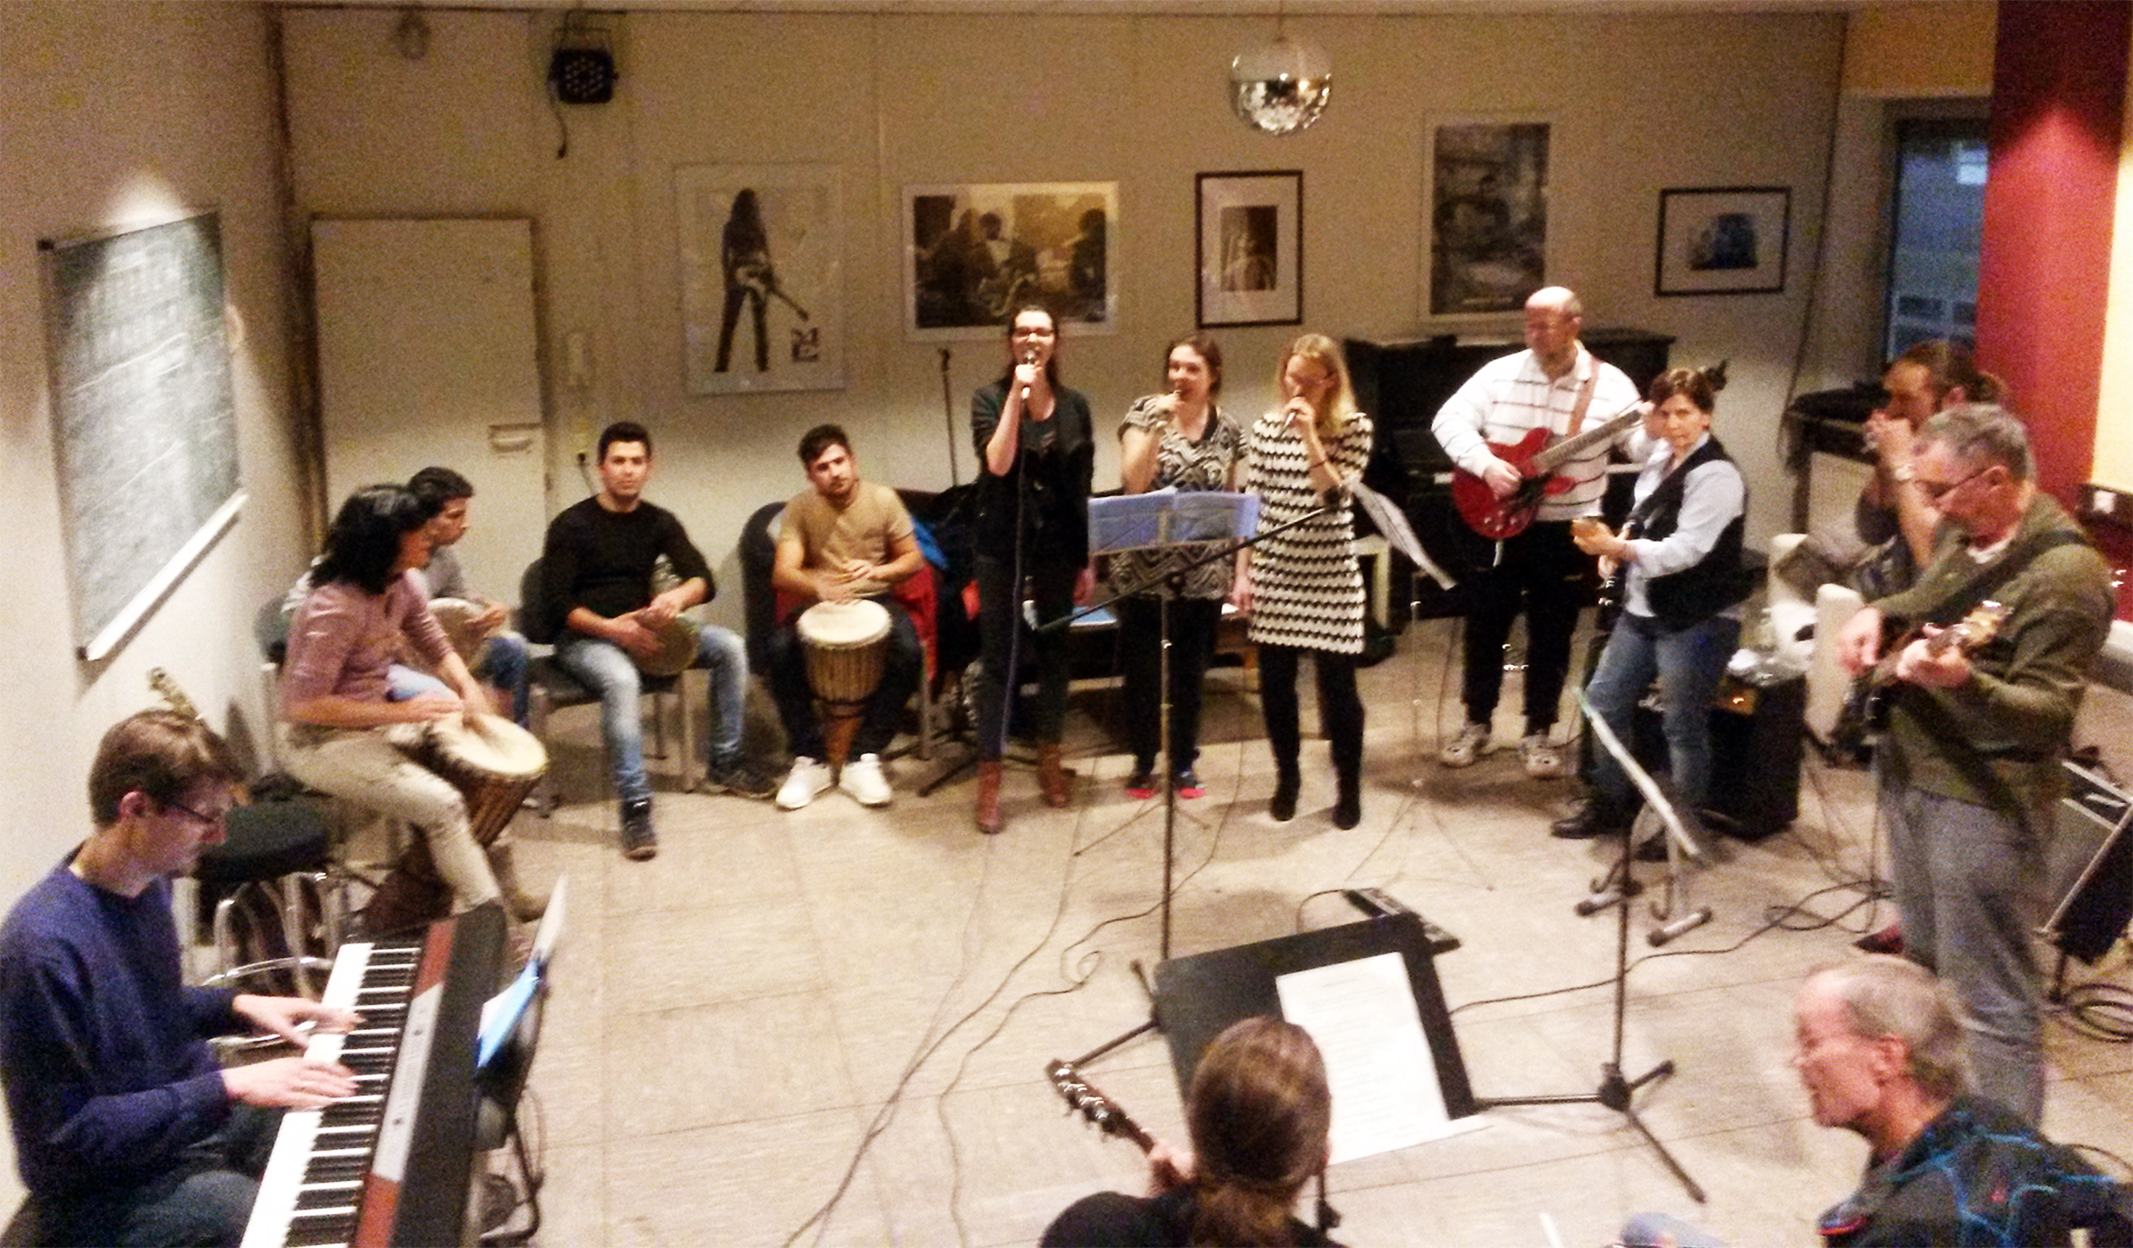 Session am 18.02.2016 in der Frankfurter Musikschule Bandschmiede